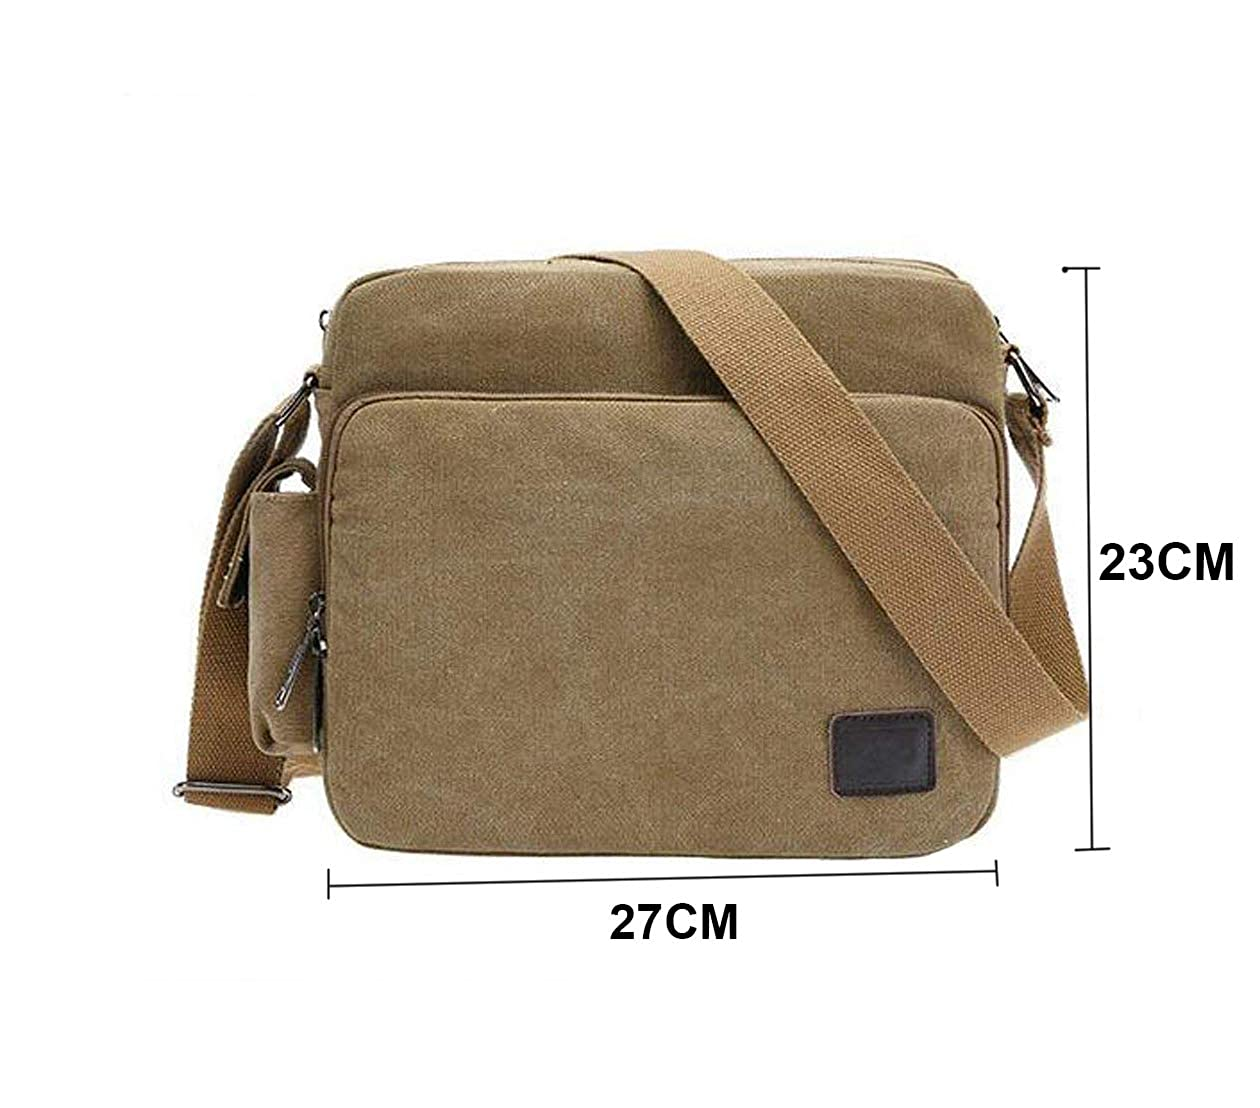 f5a957f4428ce Futurekart Men s Retro Military Canvas Messenger Bag Hiking Camping Bag  (Khaki)  Amazon.in  Shoes   Handbags